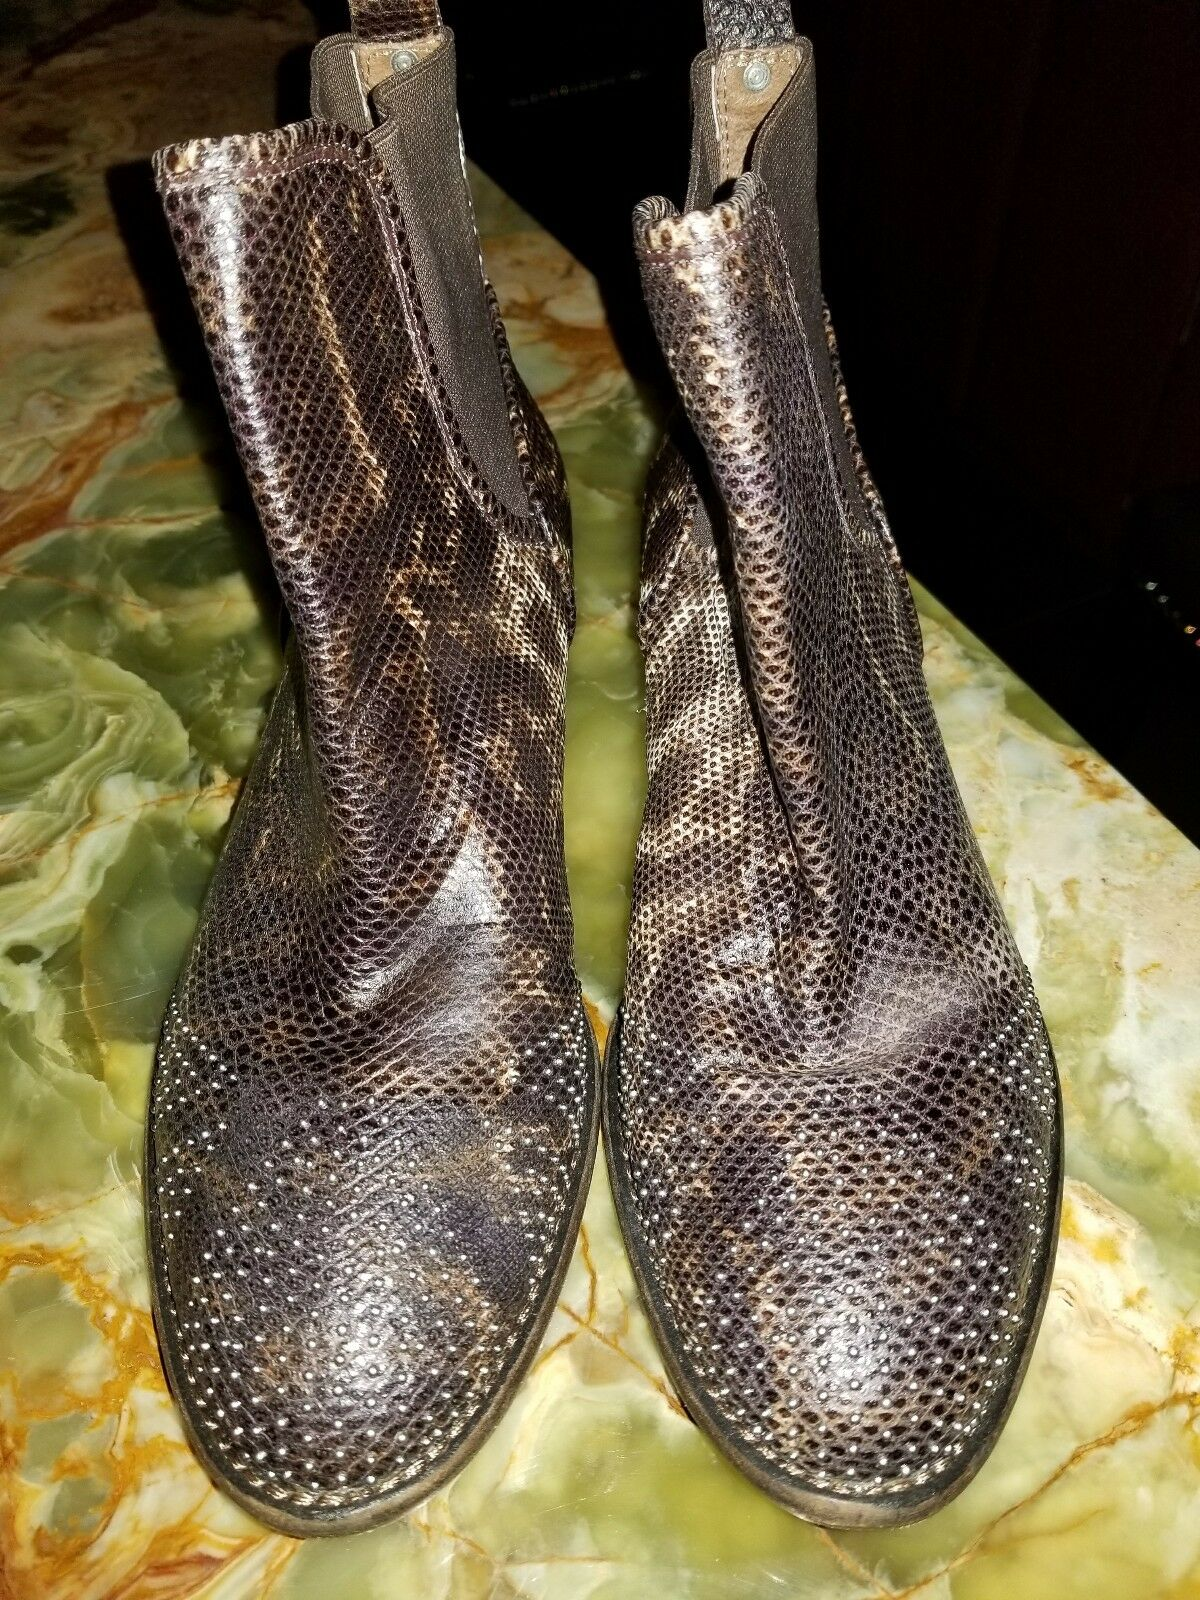 DONALD DONALD DONALD PLINER Brown  PRONTO  82 Snake Leather Studs Ankle Boots 9M 082c59